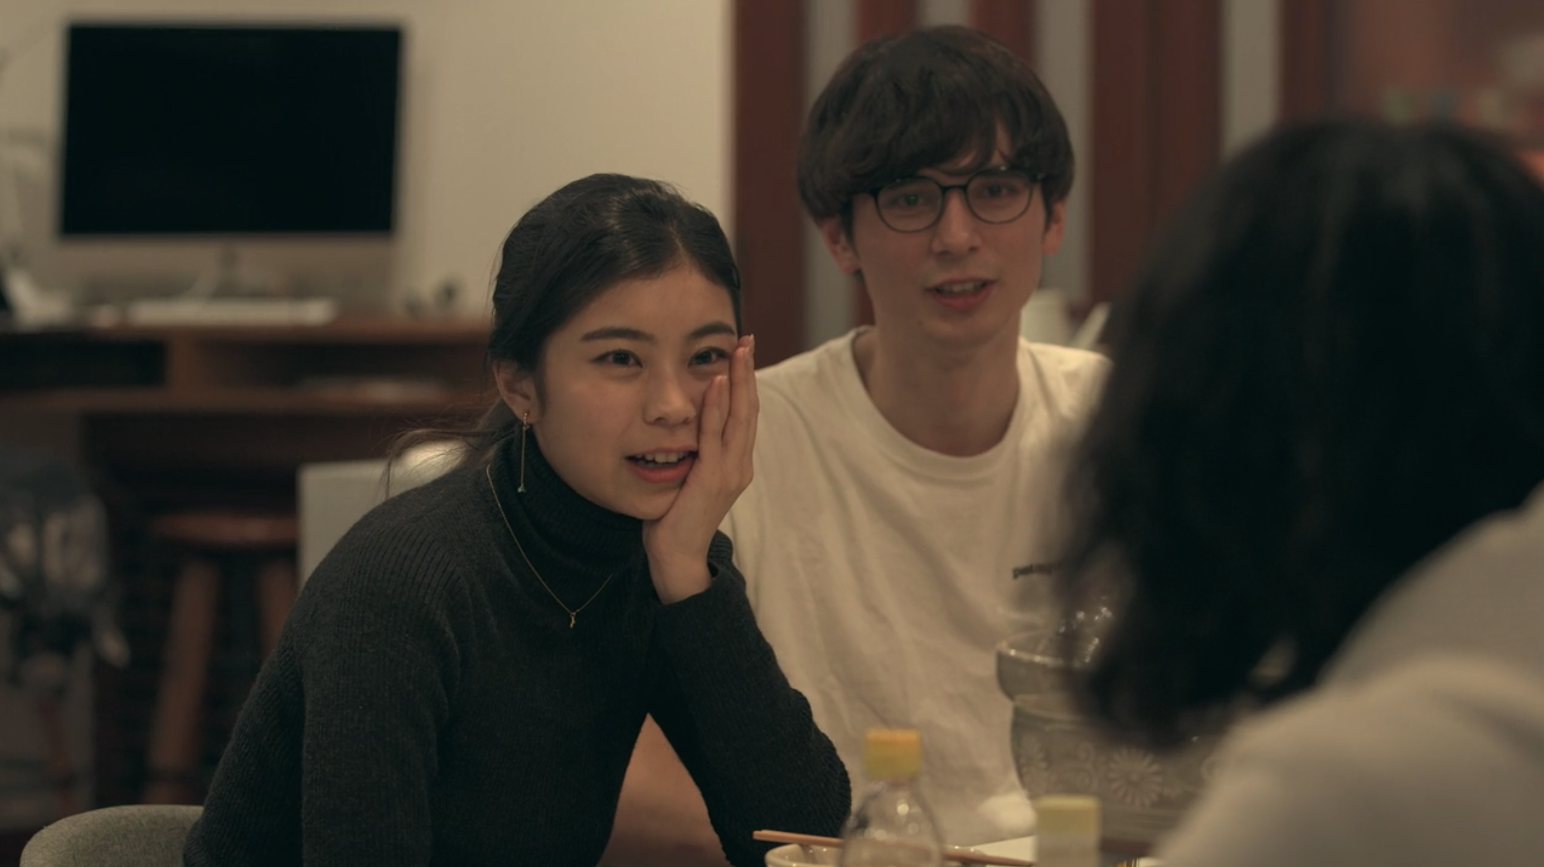 Netflix 39 s 39 terrace house opening doors 39 is addictive for Terrace house japanese show